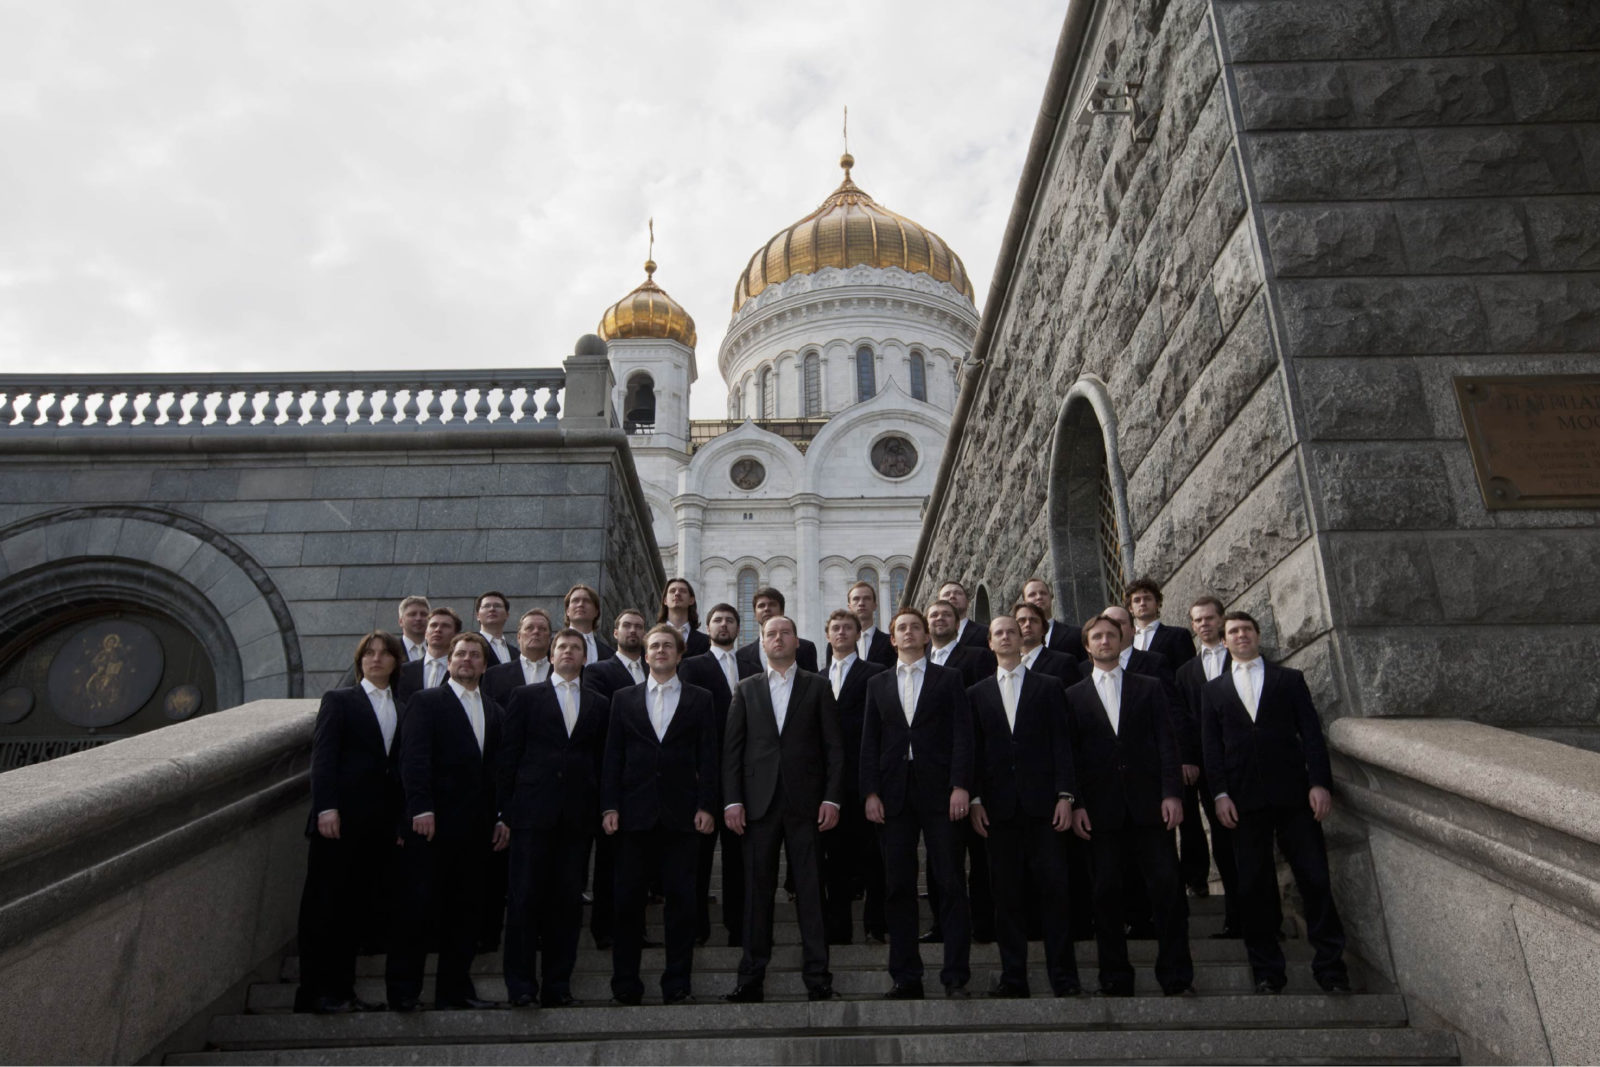 The Sretensky Monastery Choir stands on stairs with a Russian building behind them